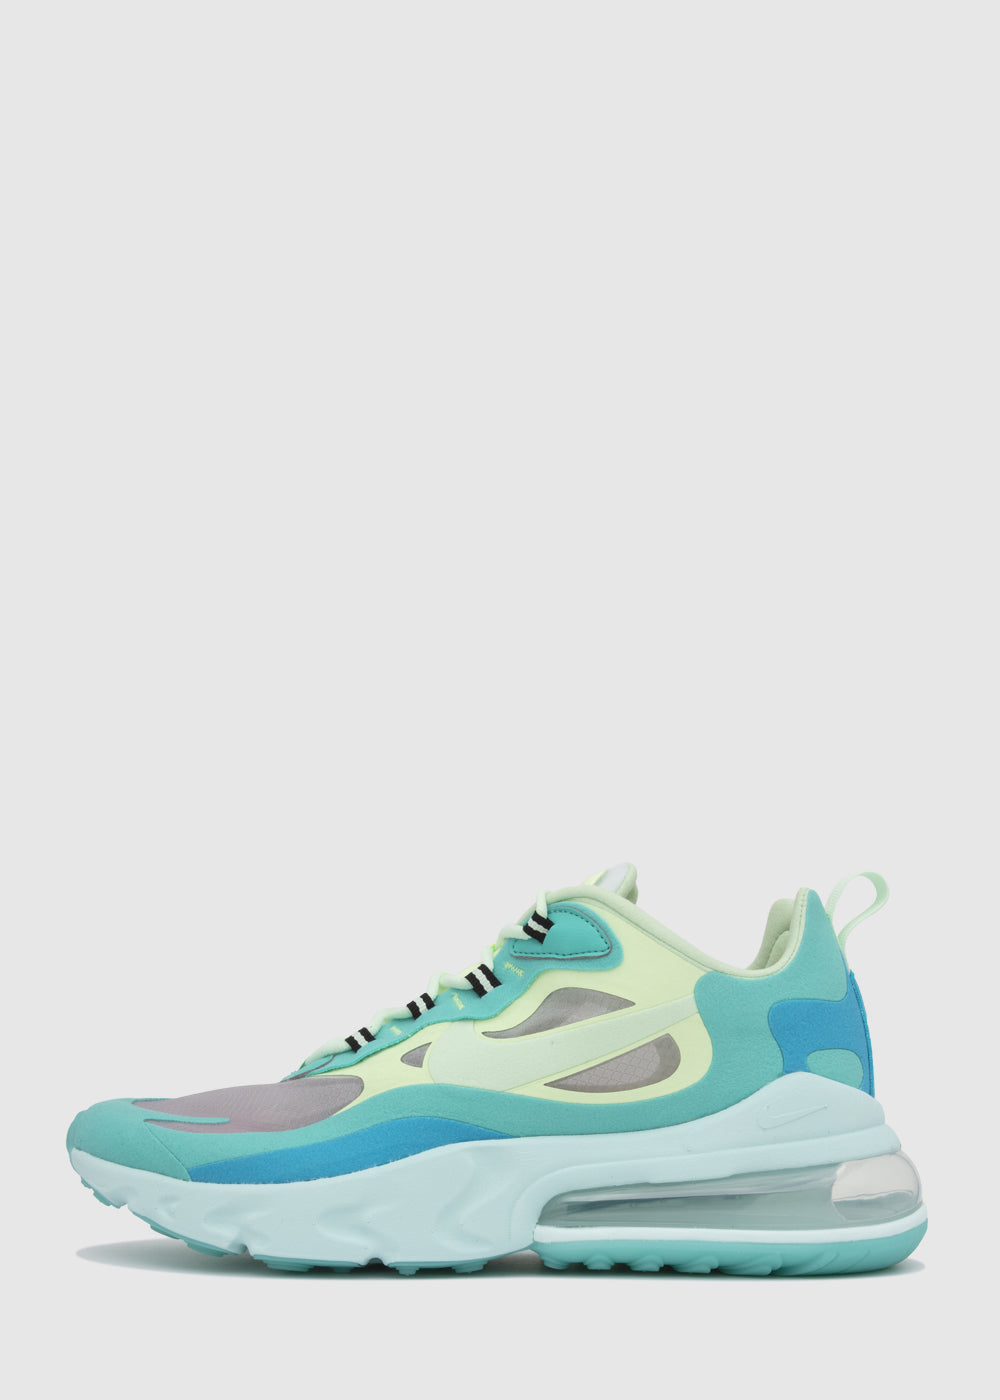 air max 270 react turquoise